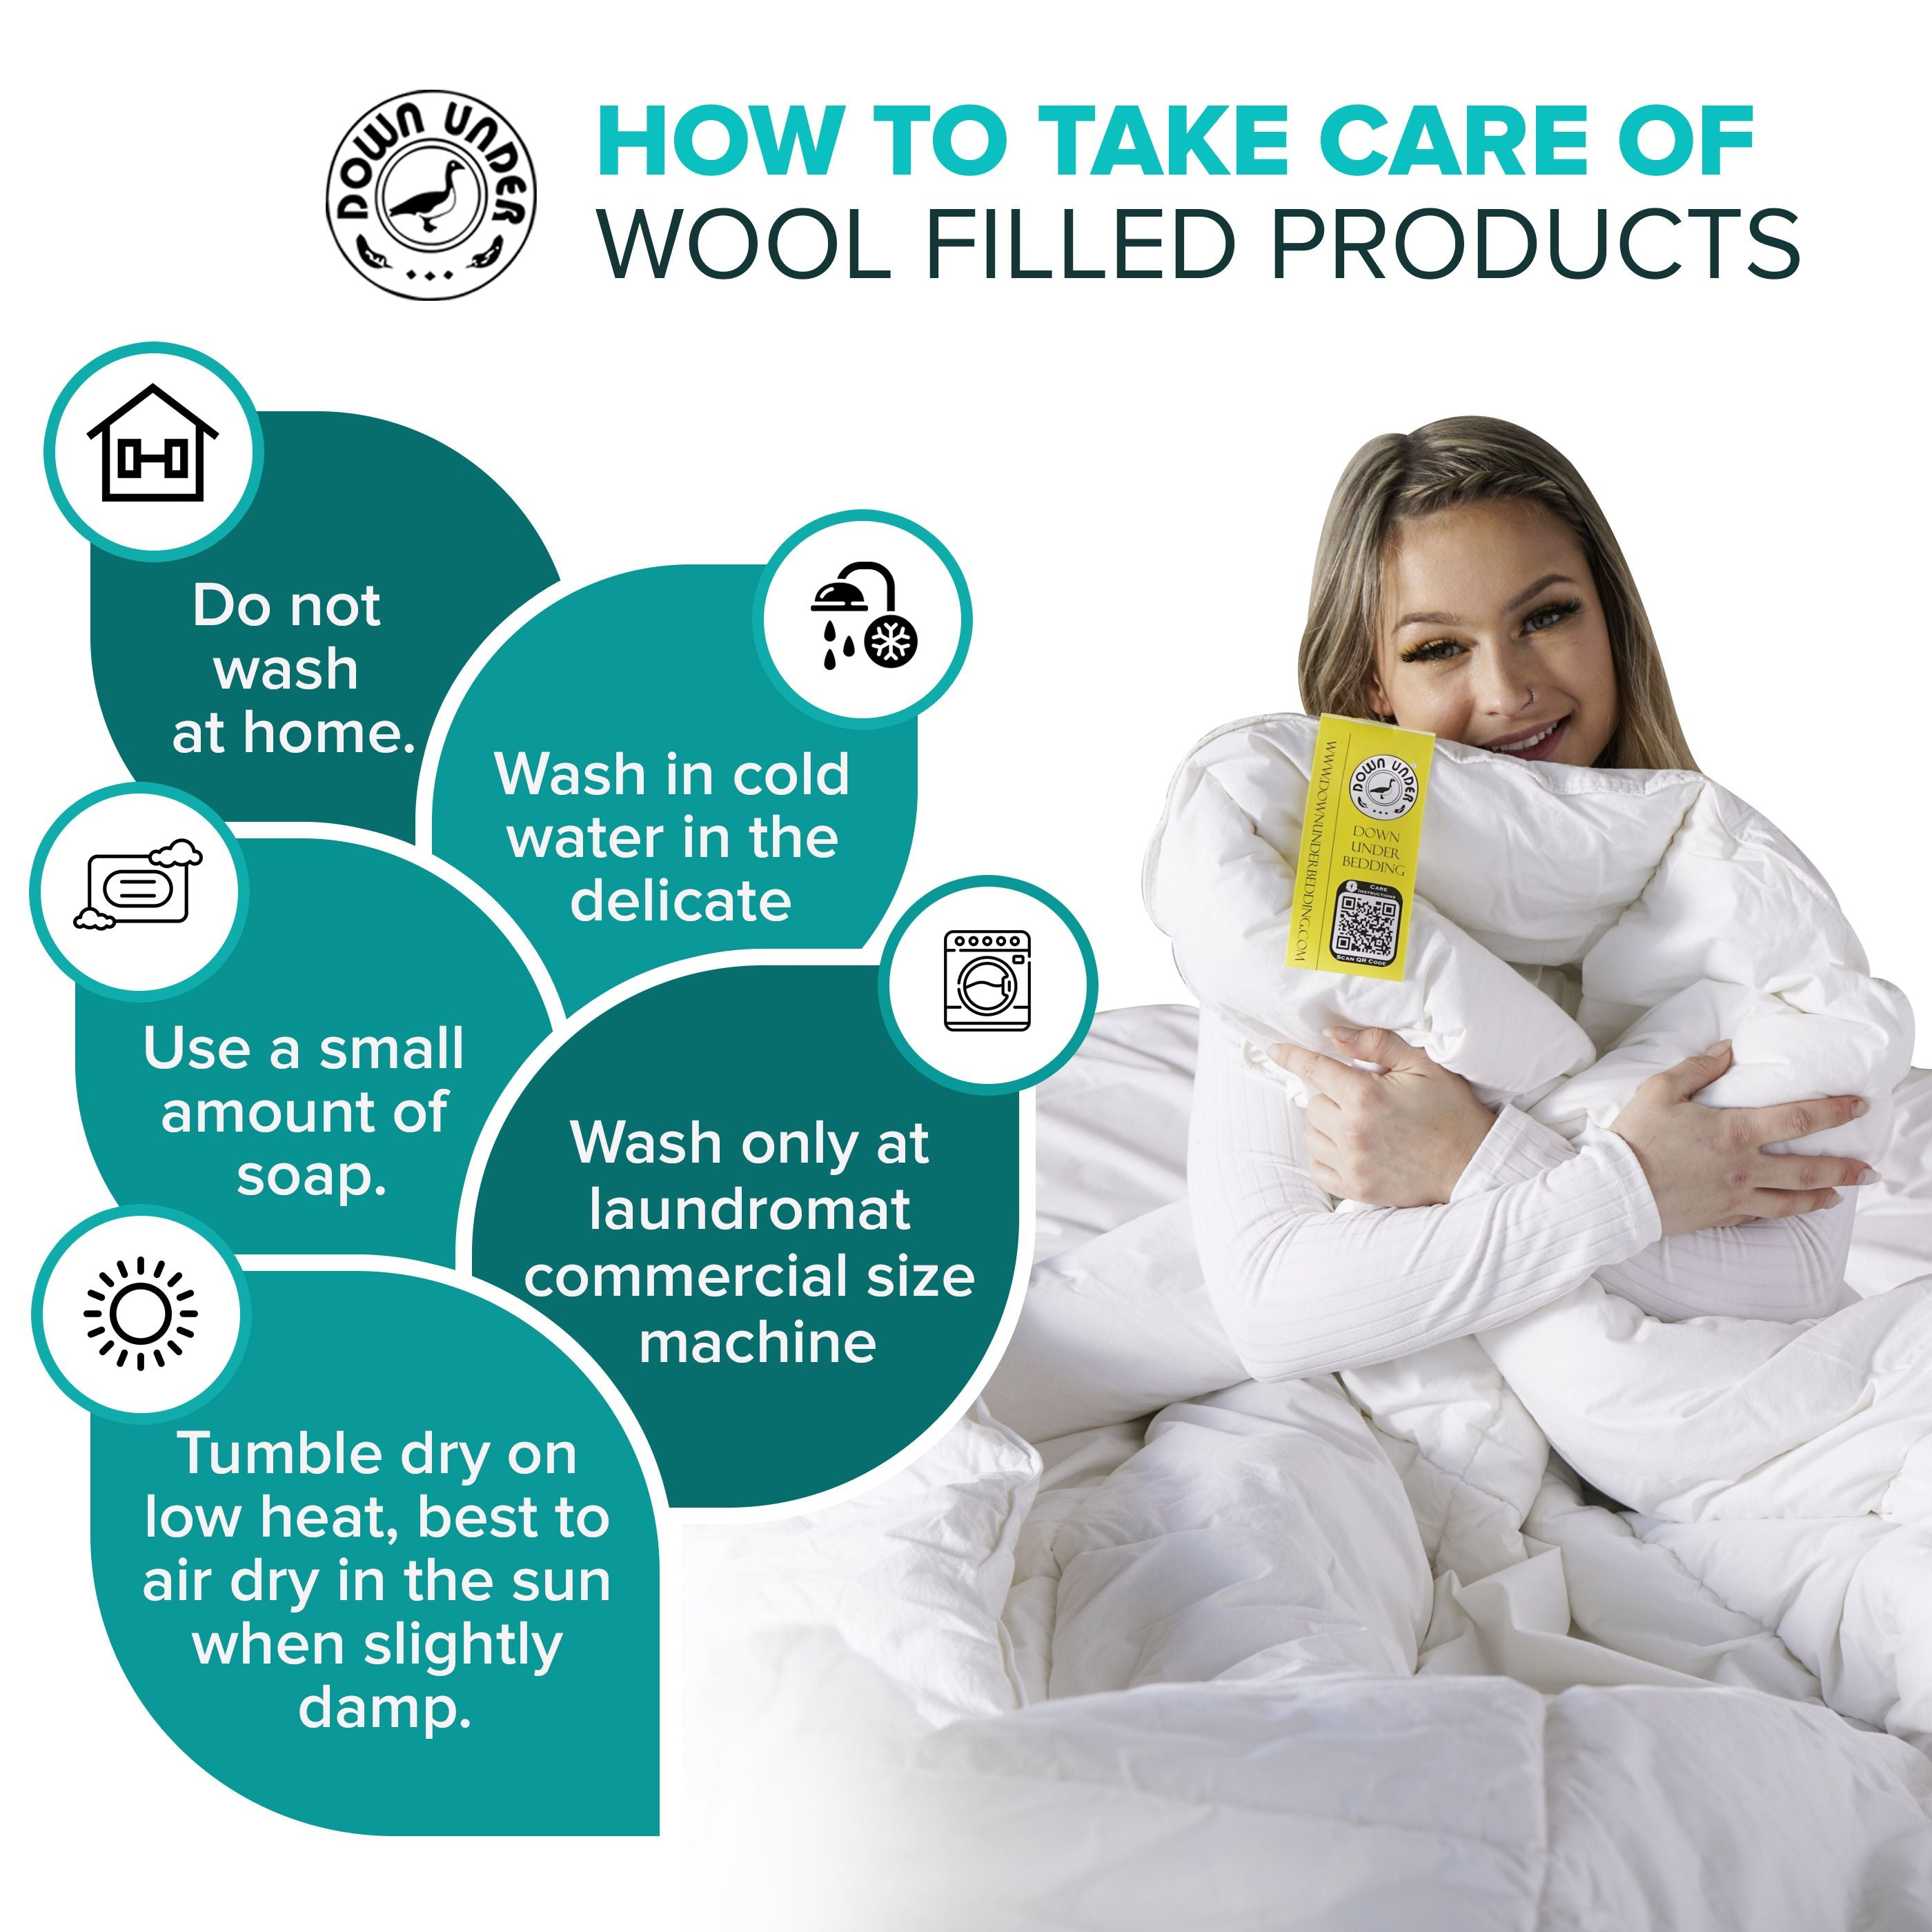 How to take care of wool filled products?